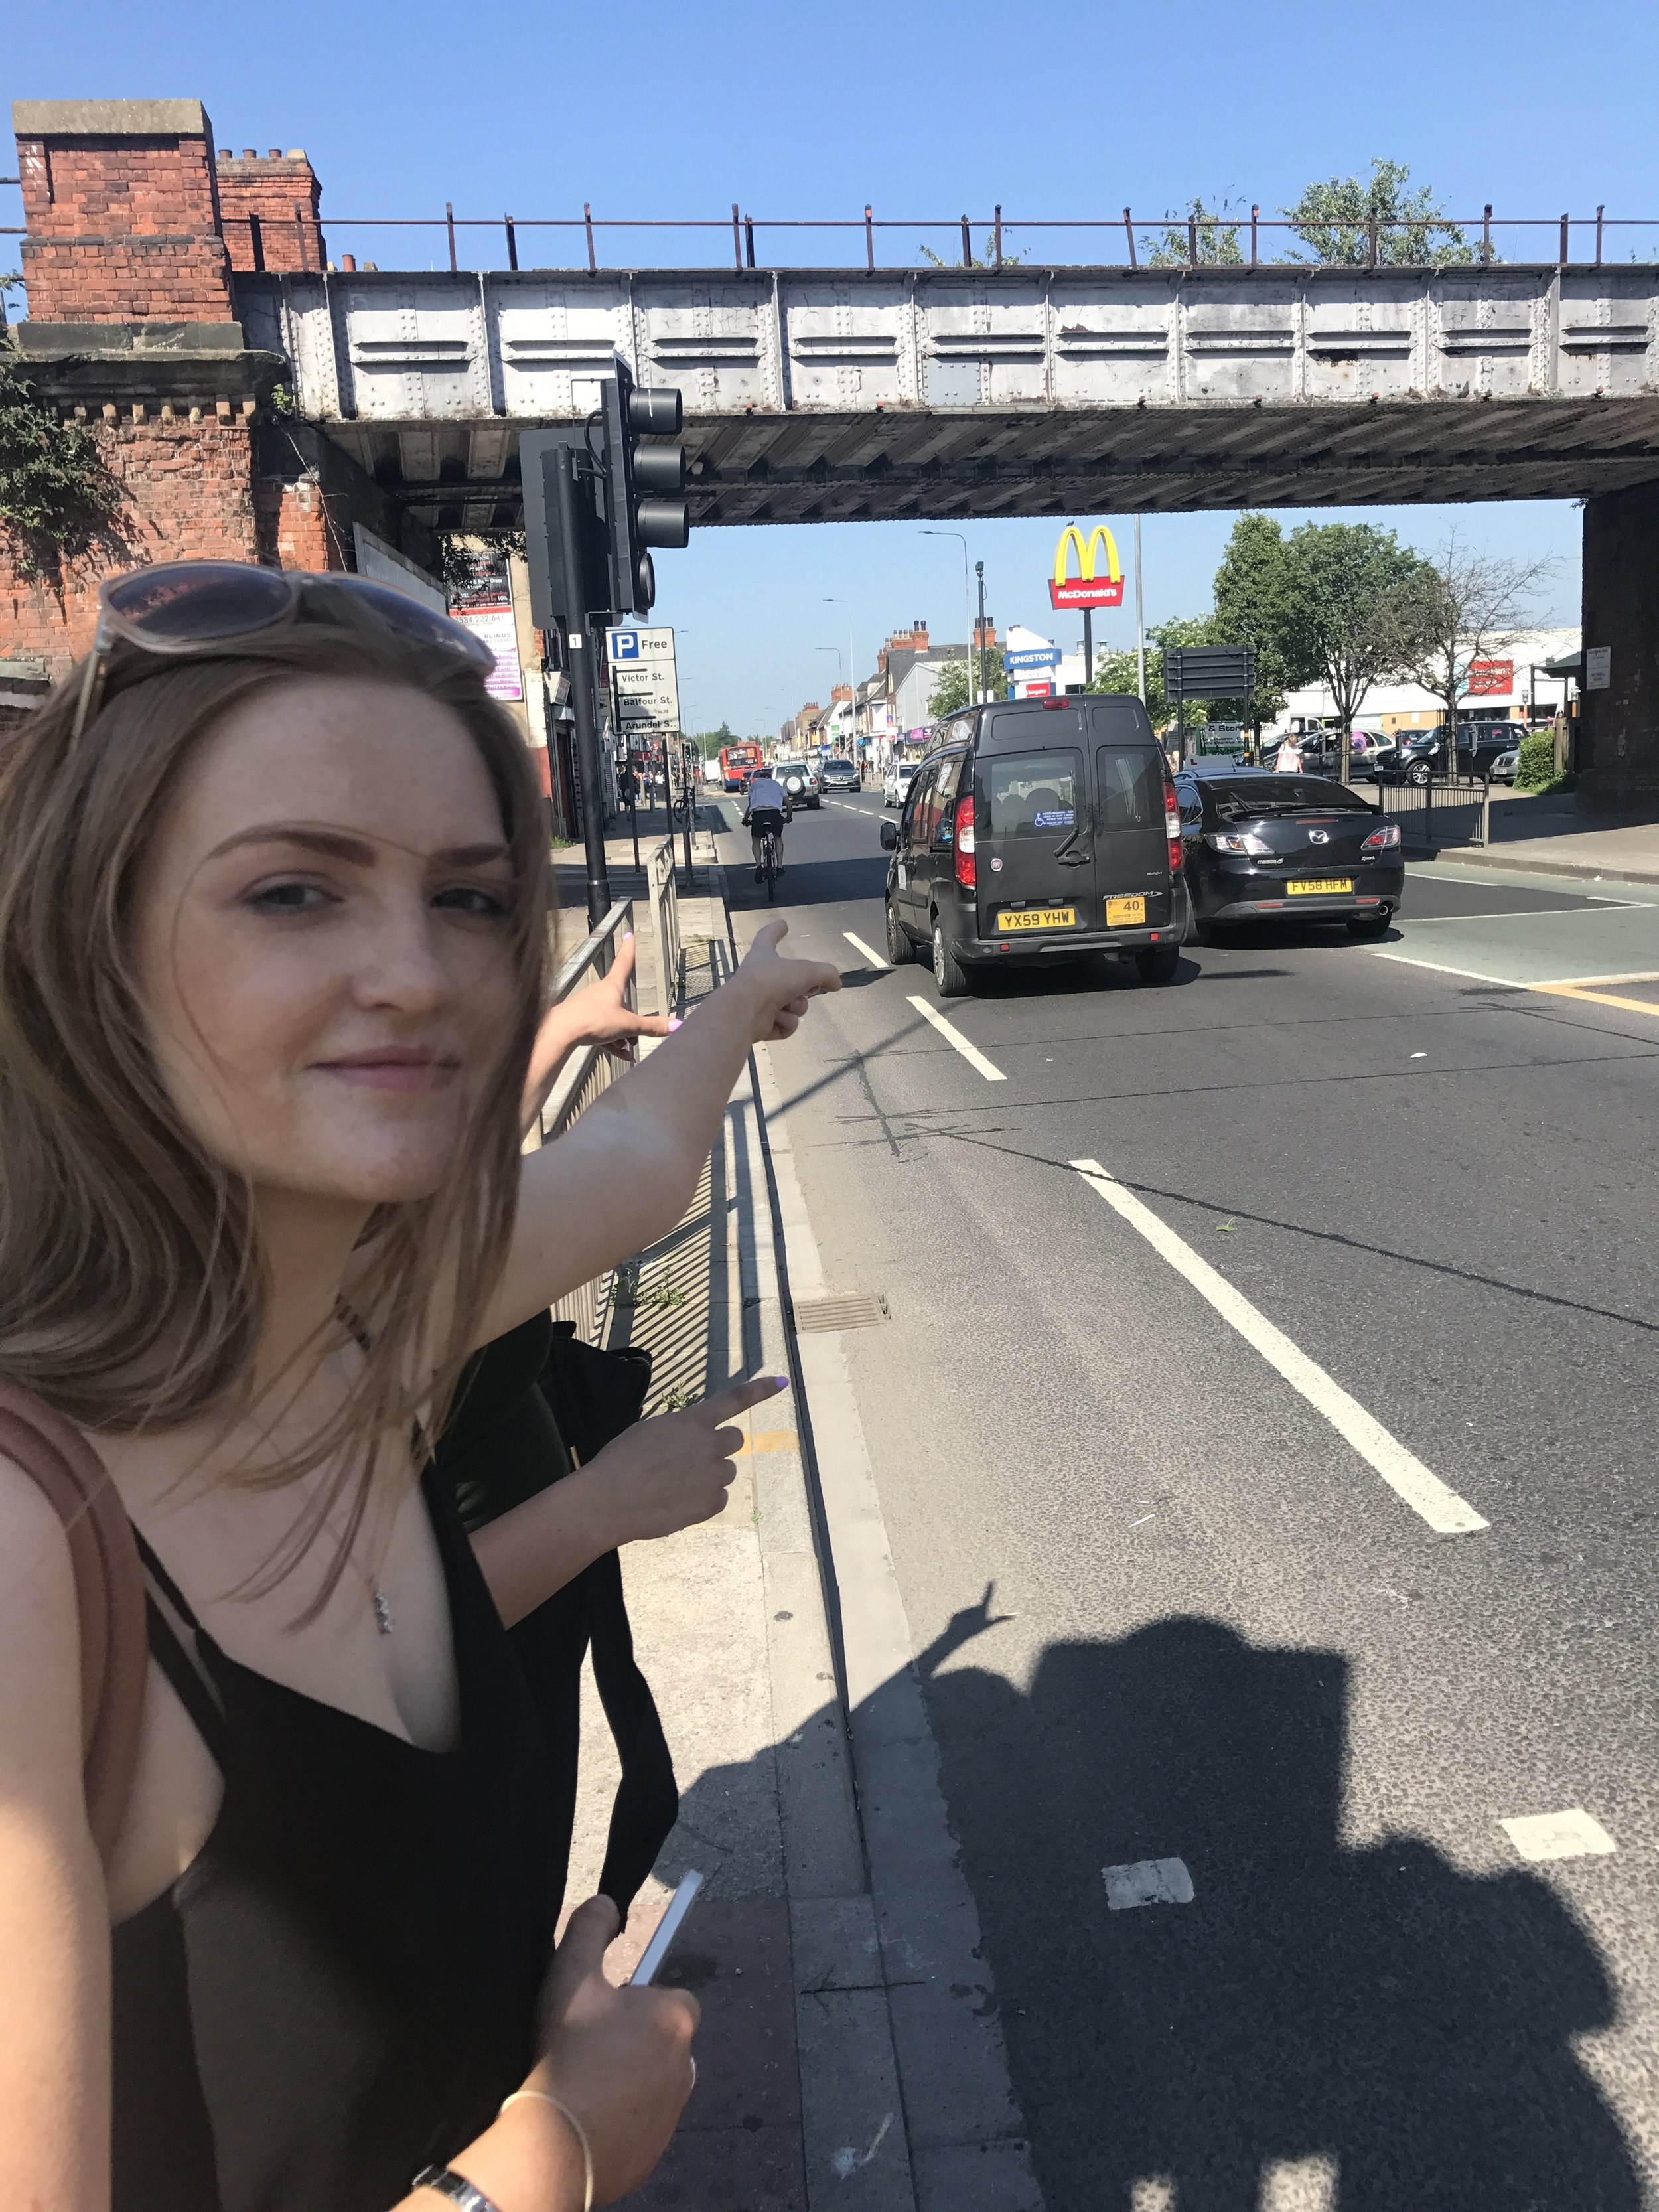 Melissa pointing at our broken taxi